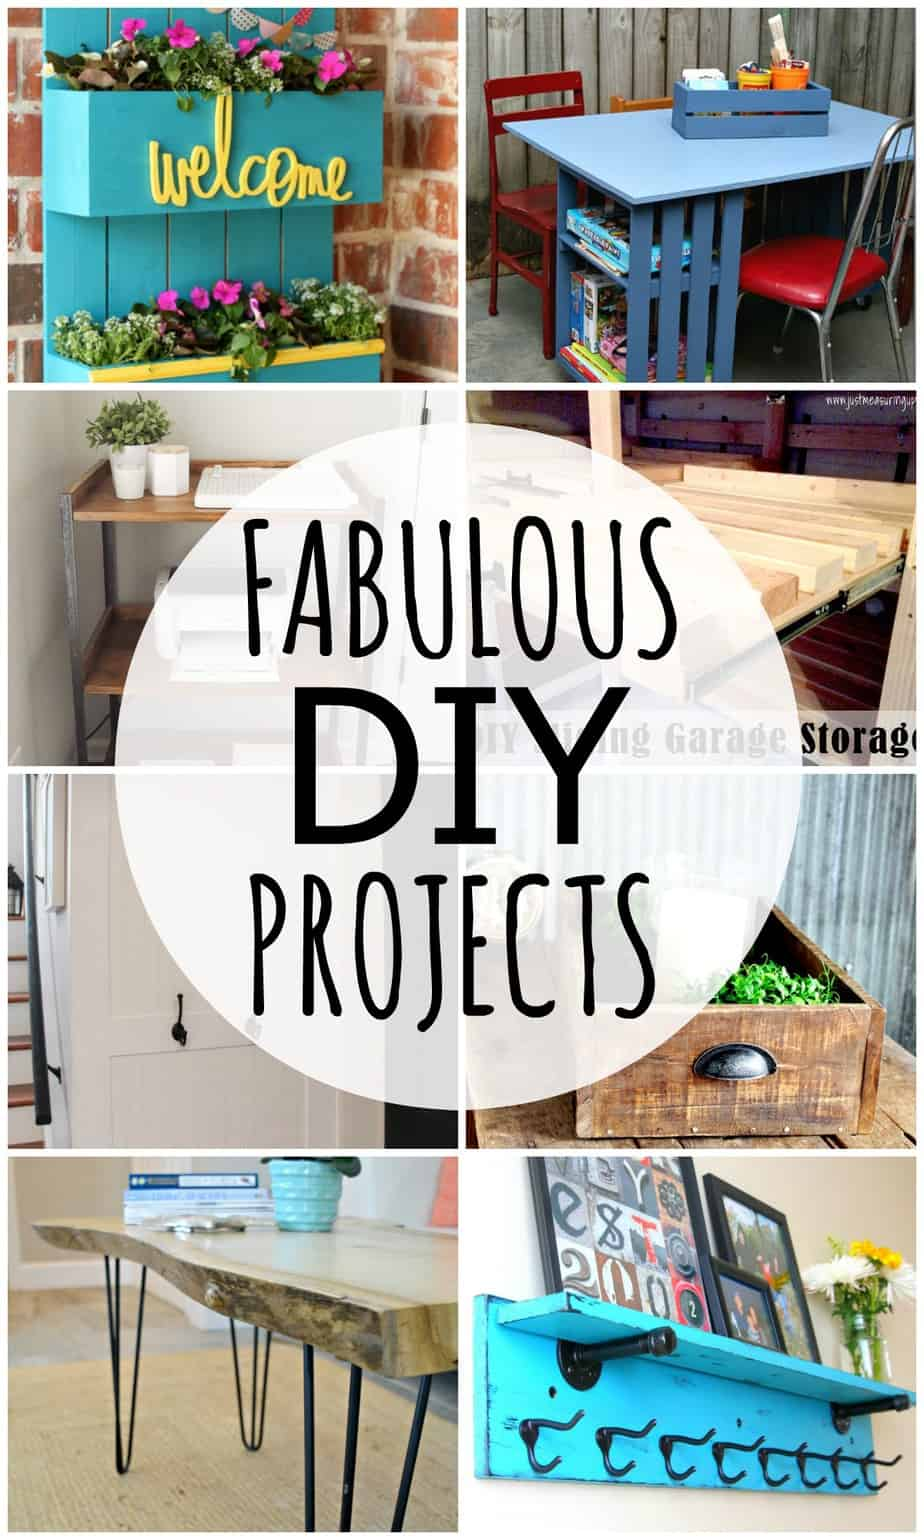 Fabulous DIY Projects